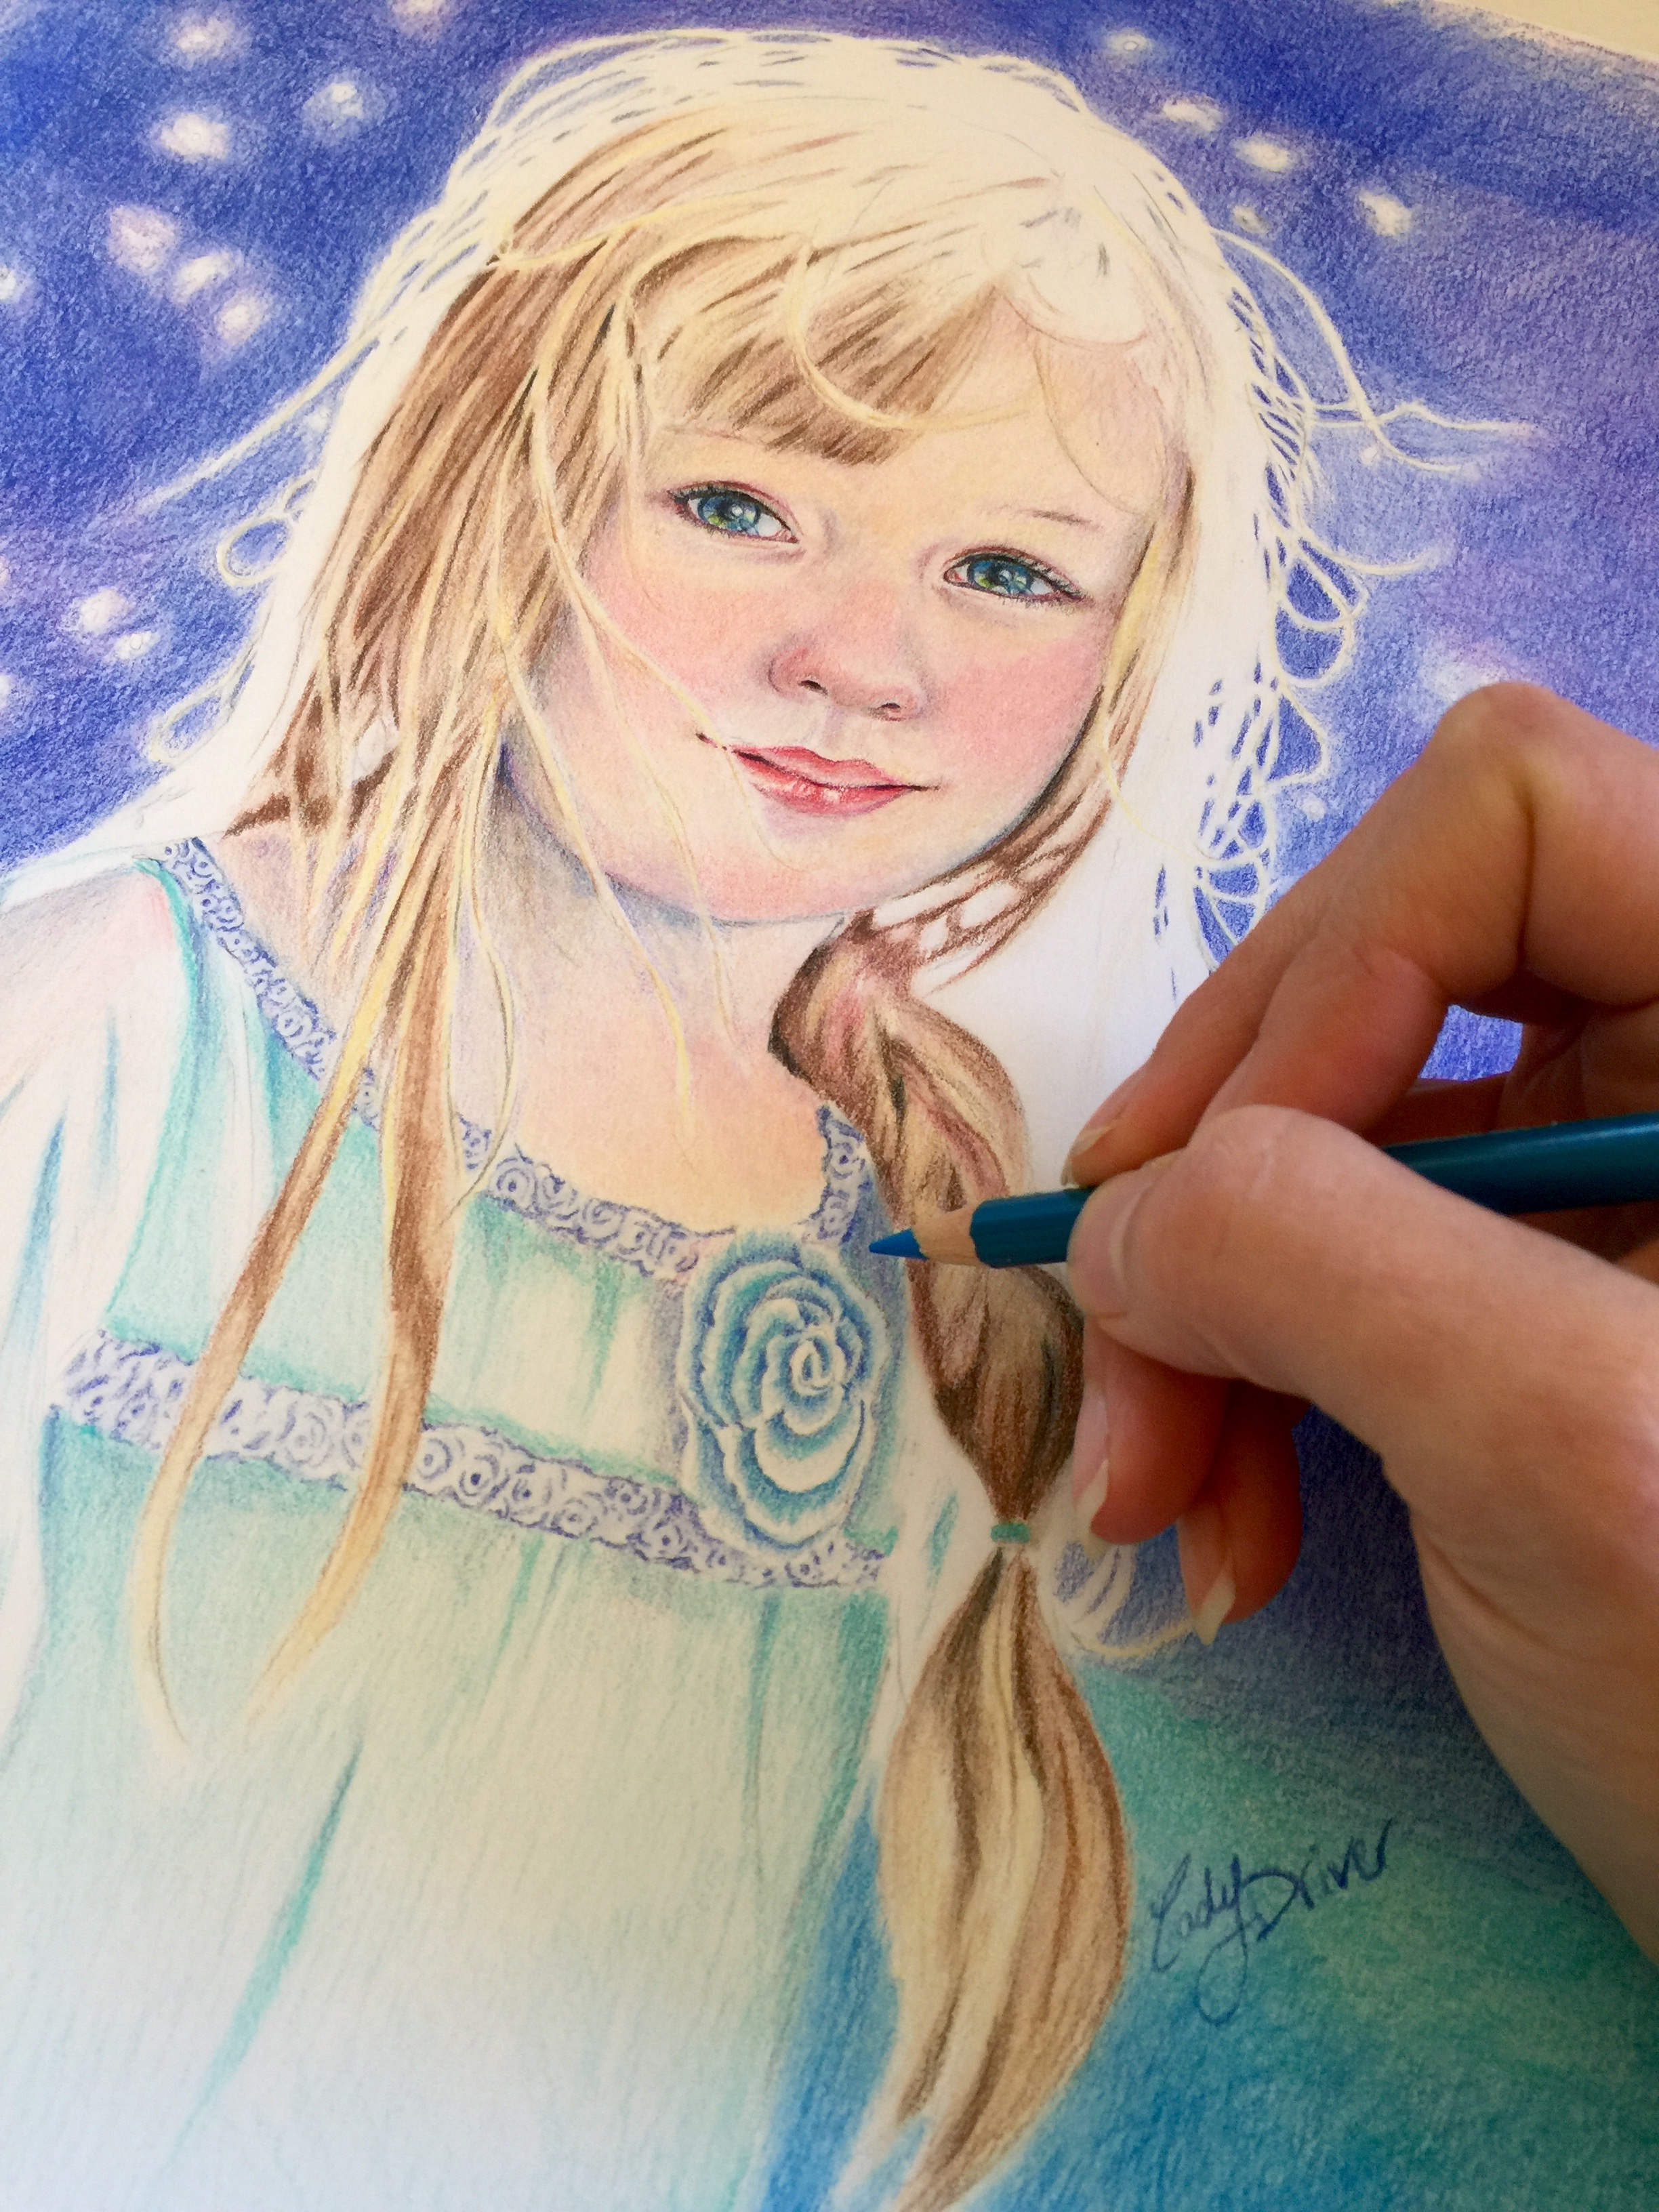 Drawing Clothing on a Portrait in Colored Pencil